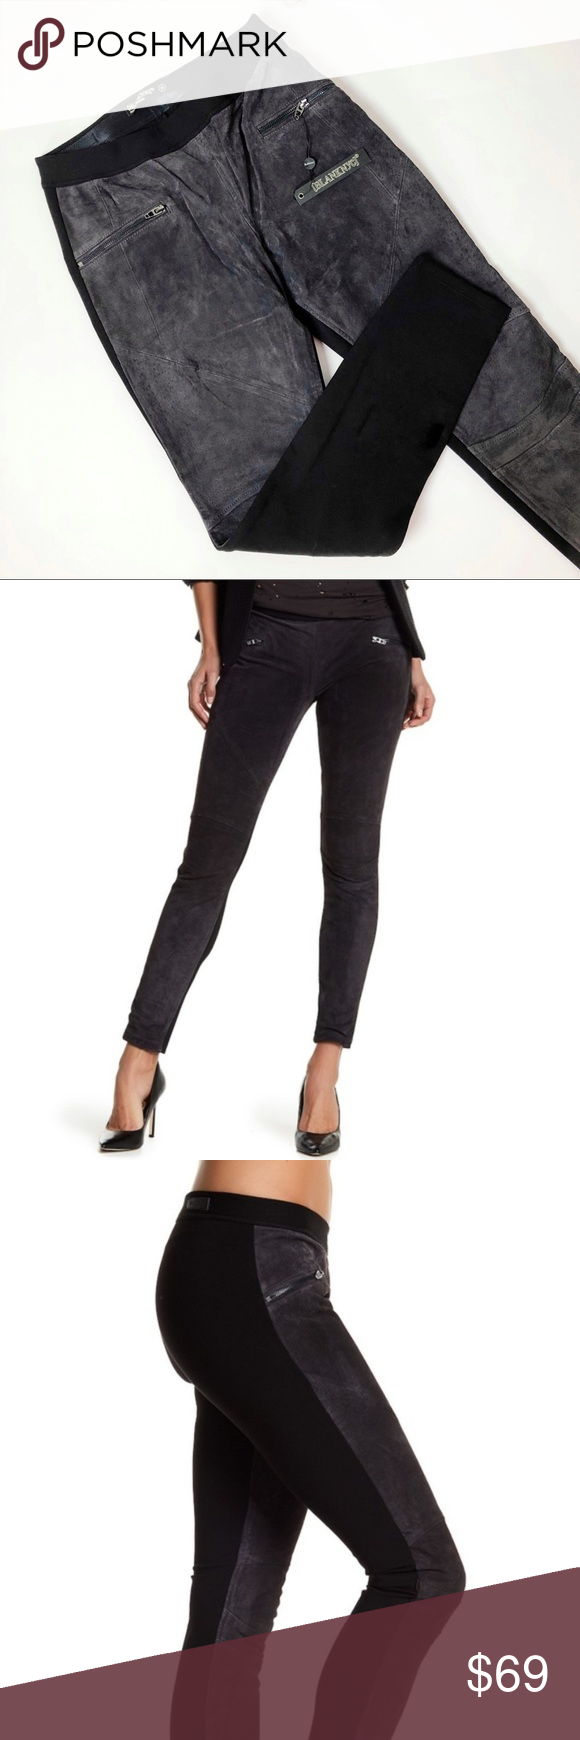 618e8a118eefea BlankNYC | Suede Leather Pull On Leggings | NWT New with tags. Gray suede  paneled